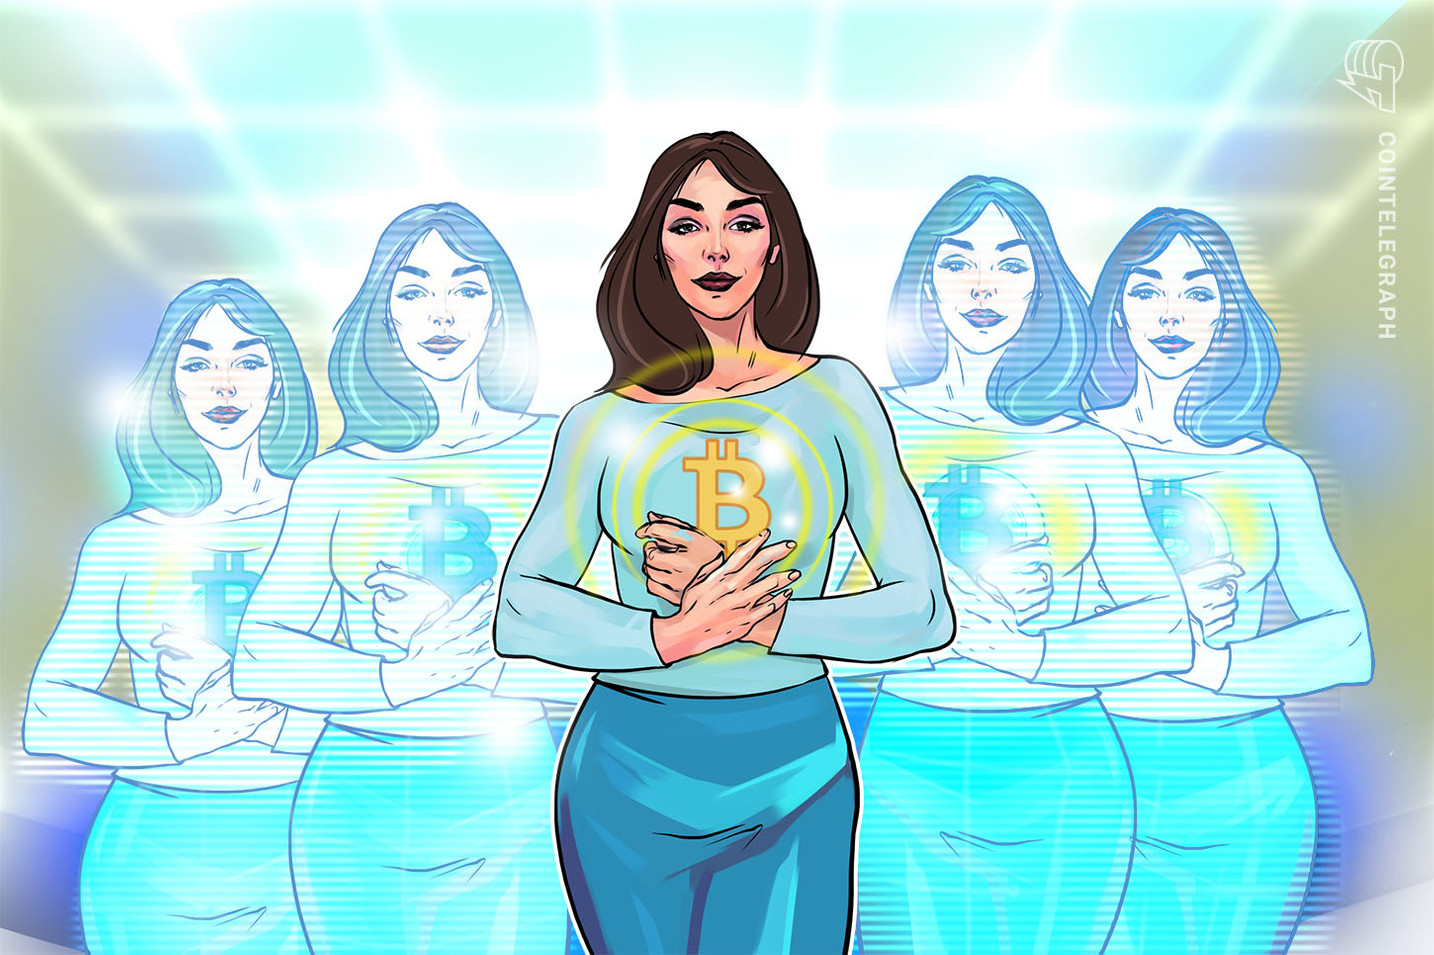 43% of Investors Interested in Bitcoin Are Women: Grayscale Survey